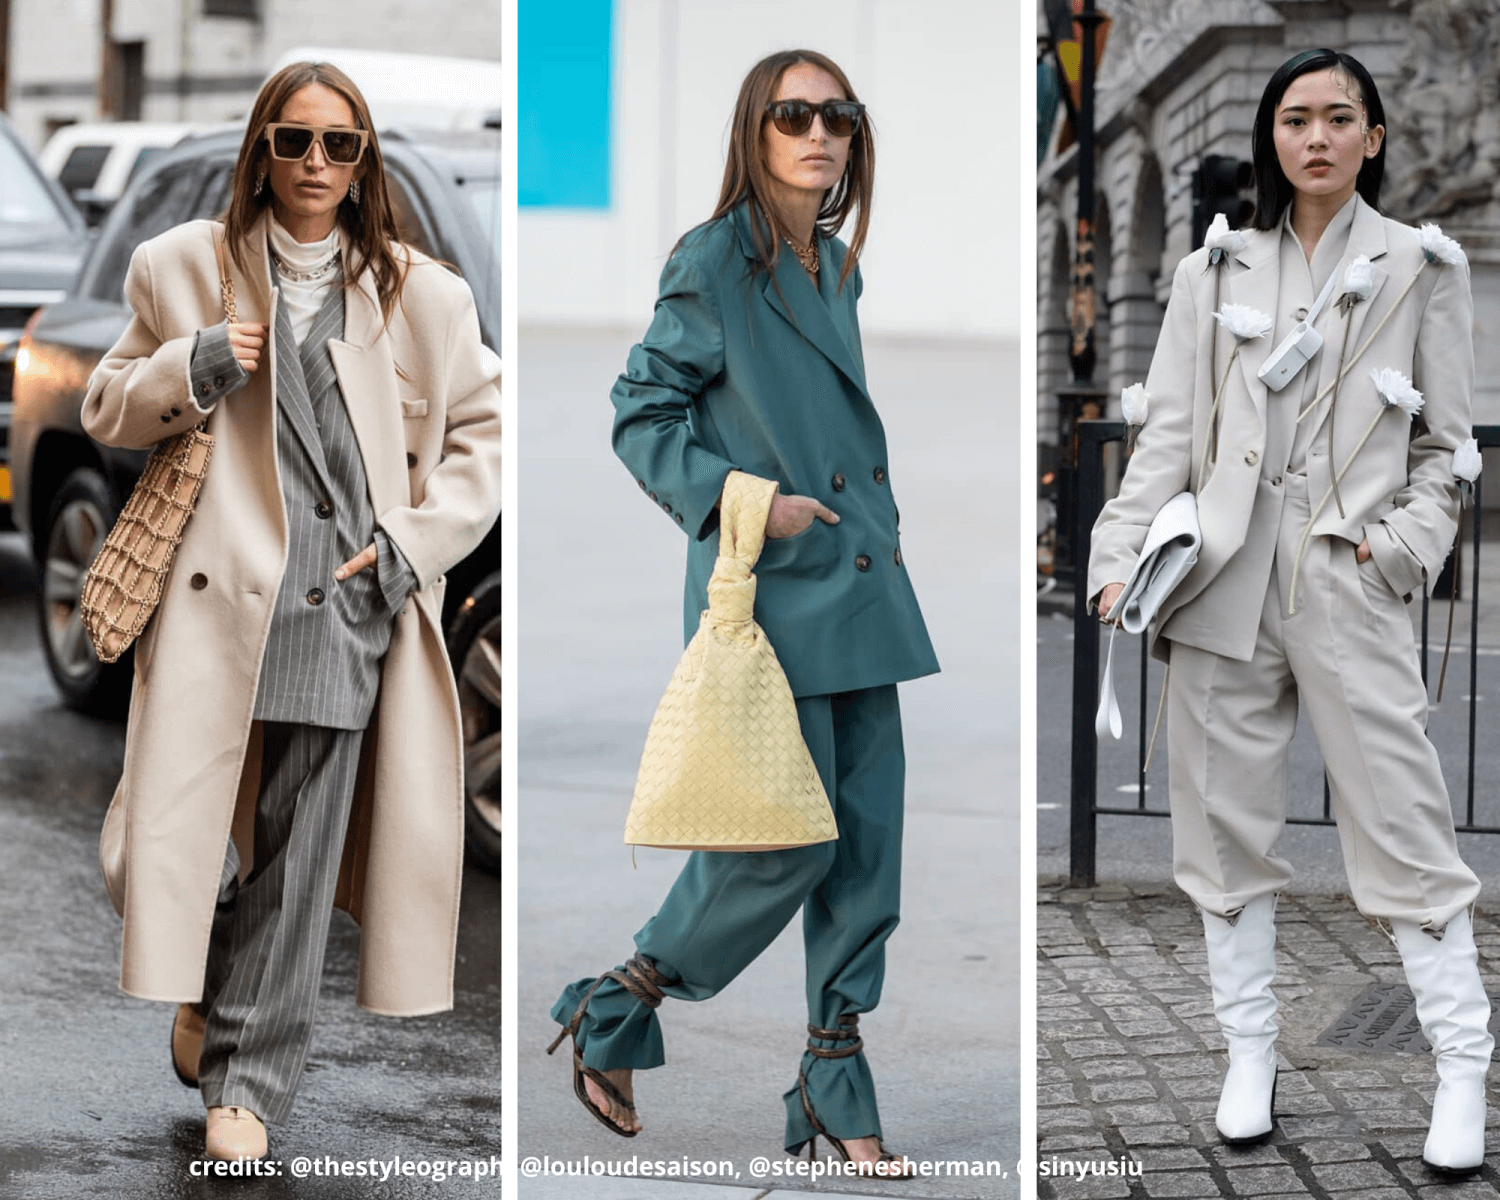 AW20 LFW street style fashion trends suit